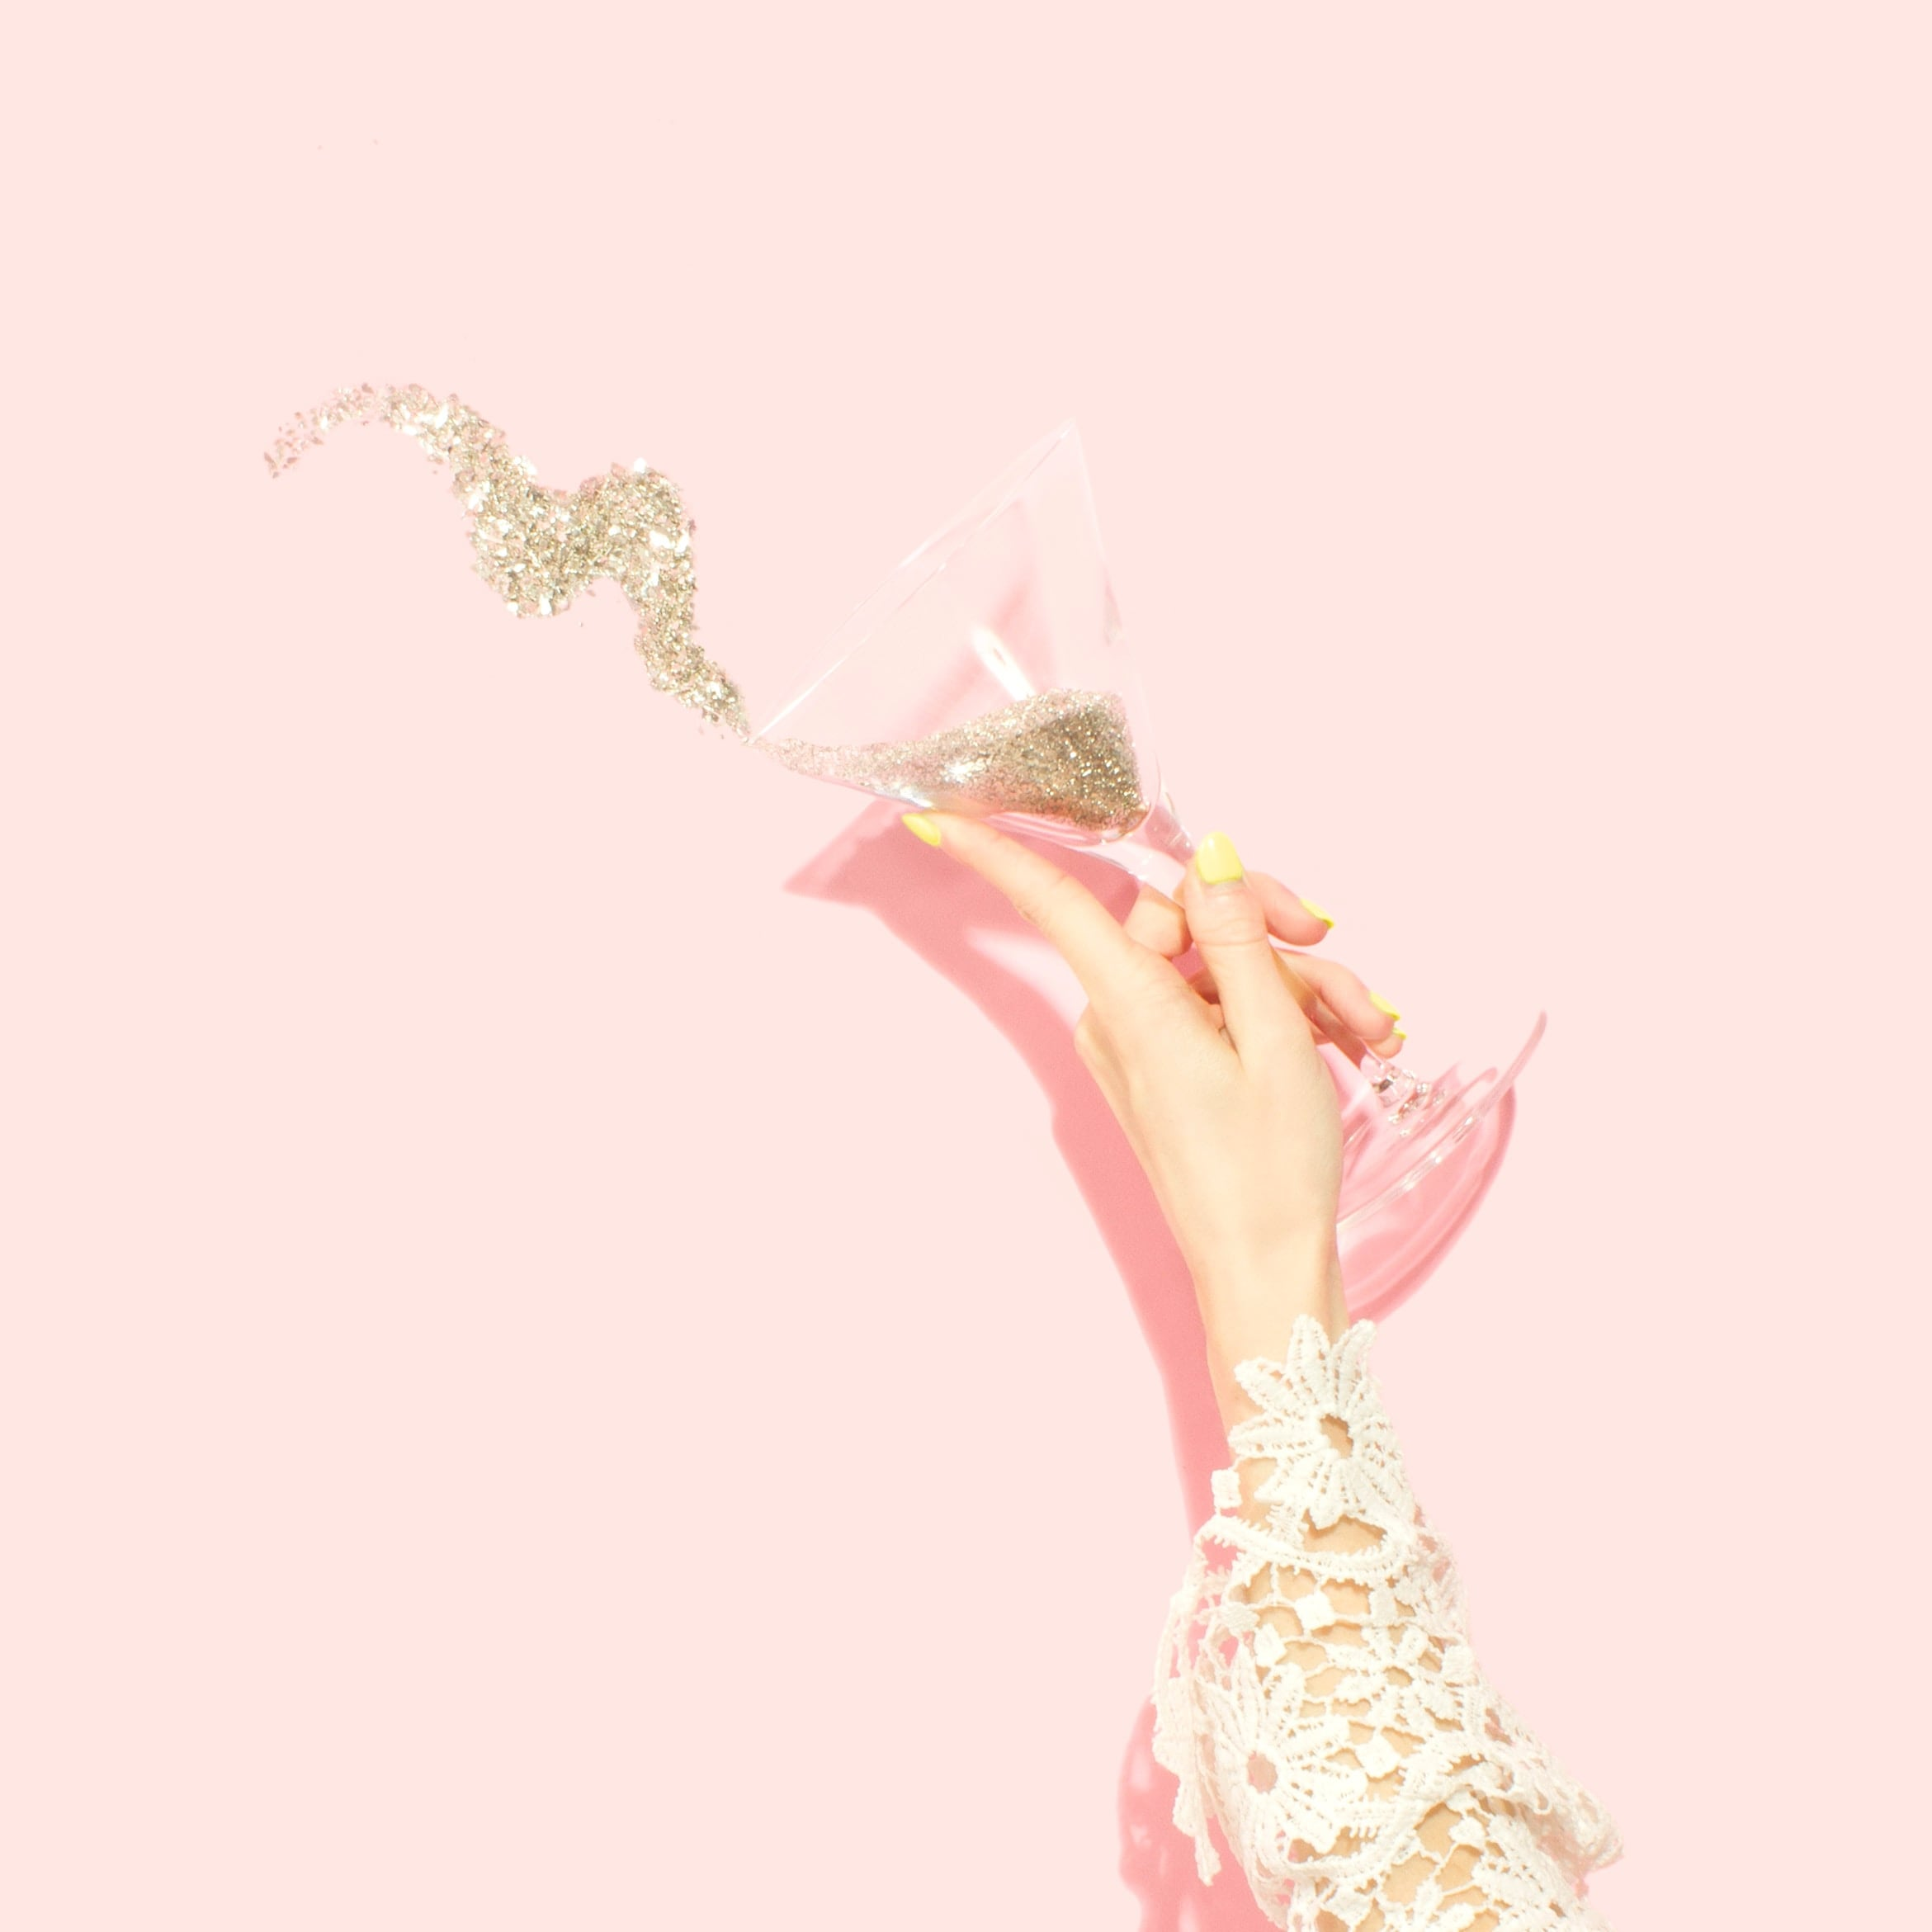 Woman holding martini glass filled with glitter. Photo by Amy Shamblen on Unsplash